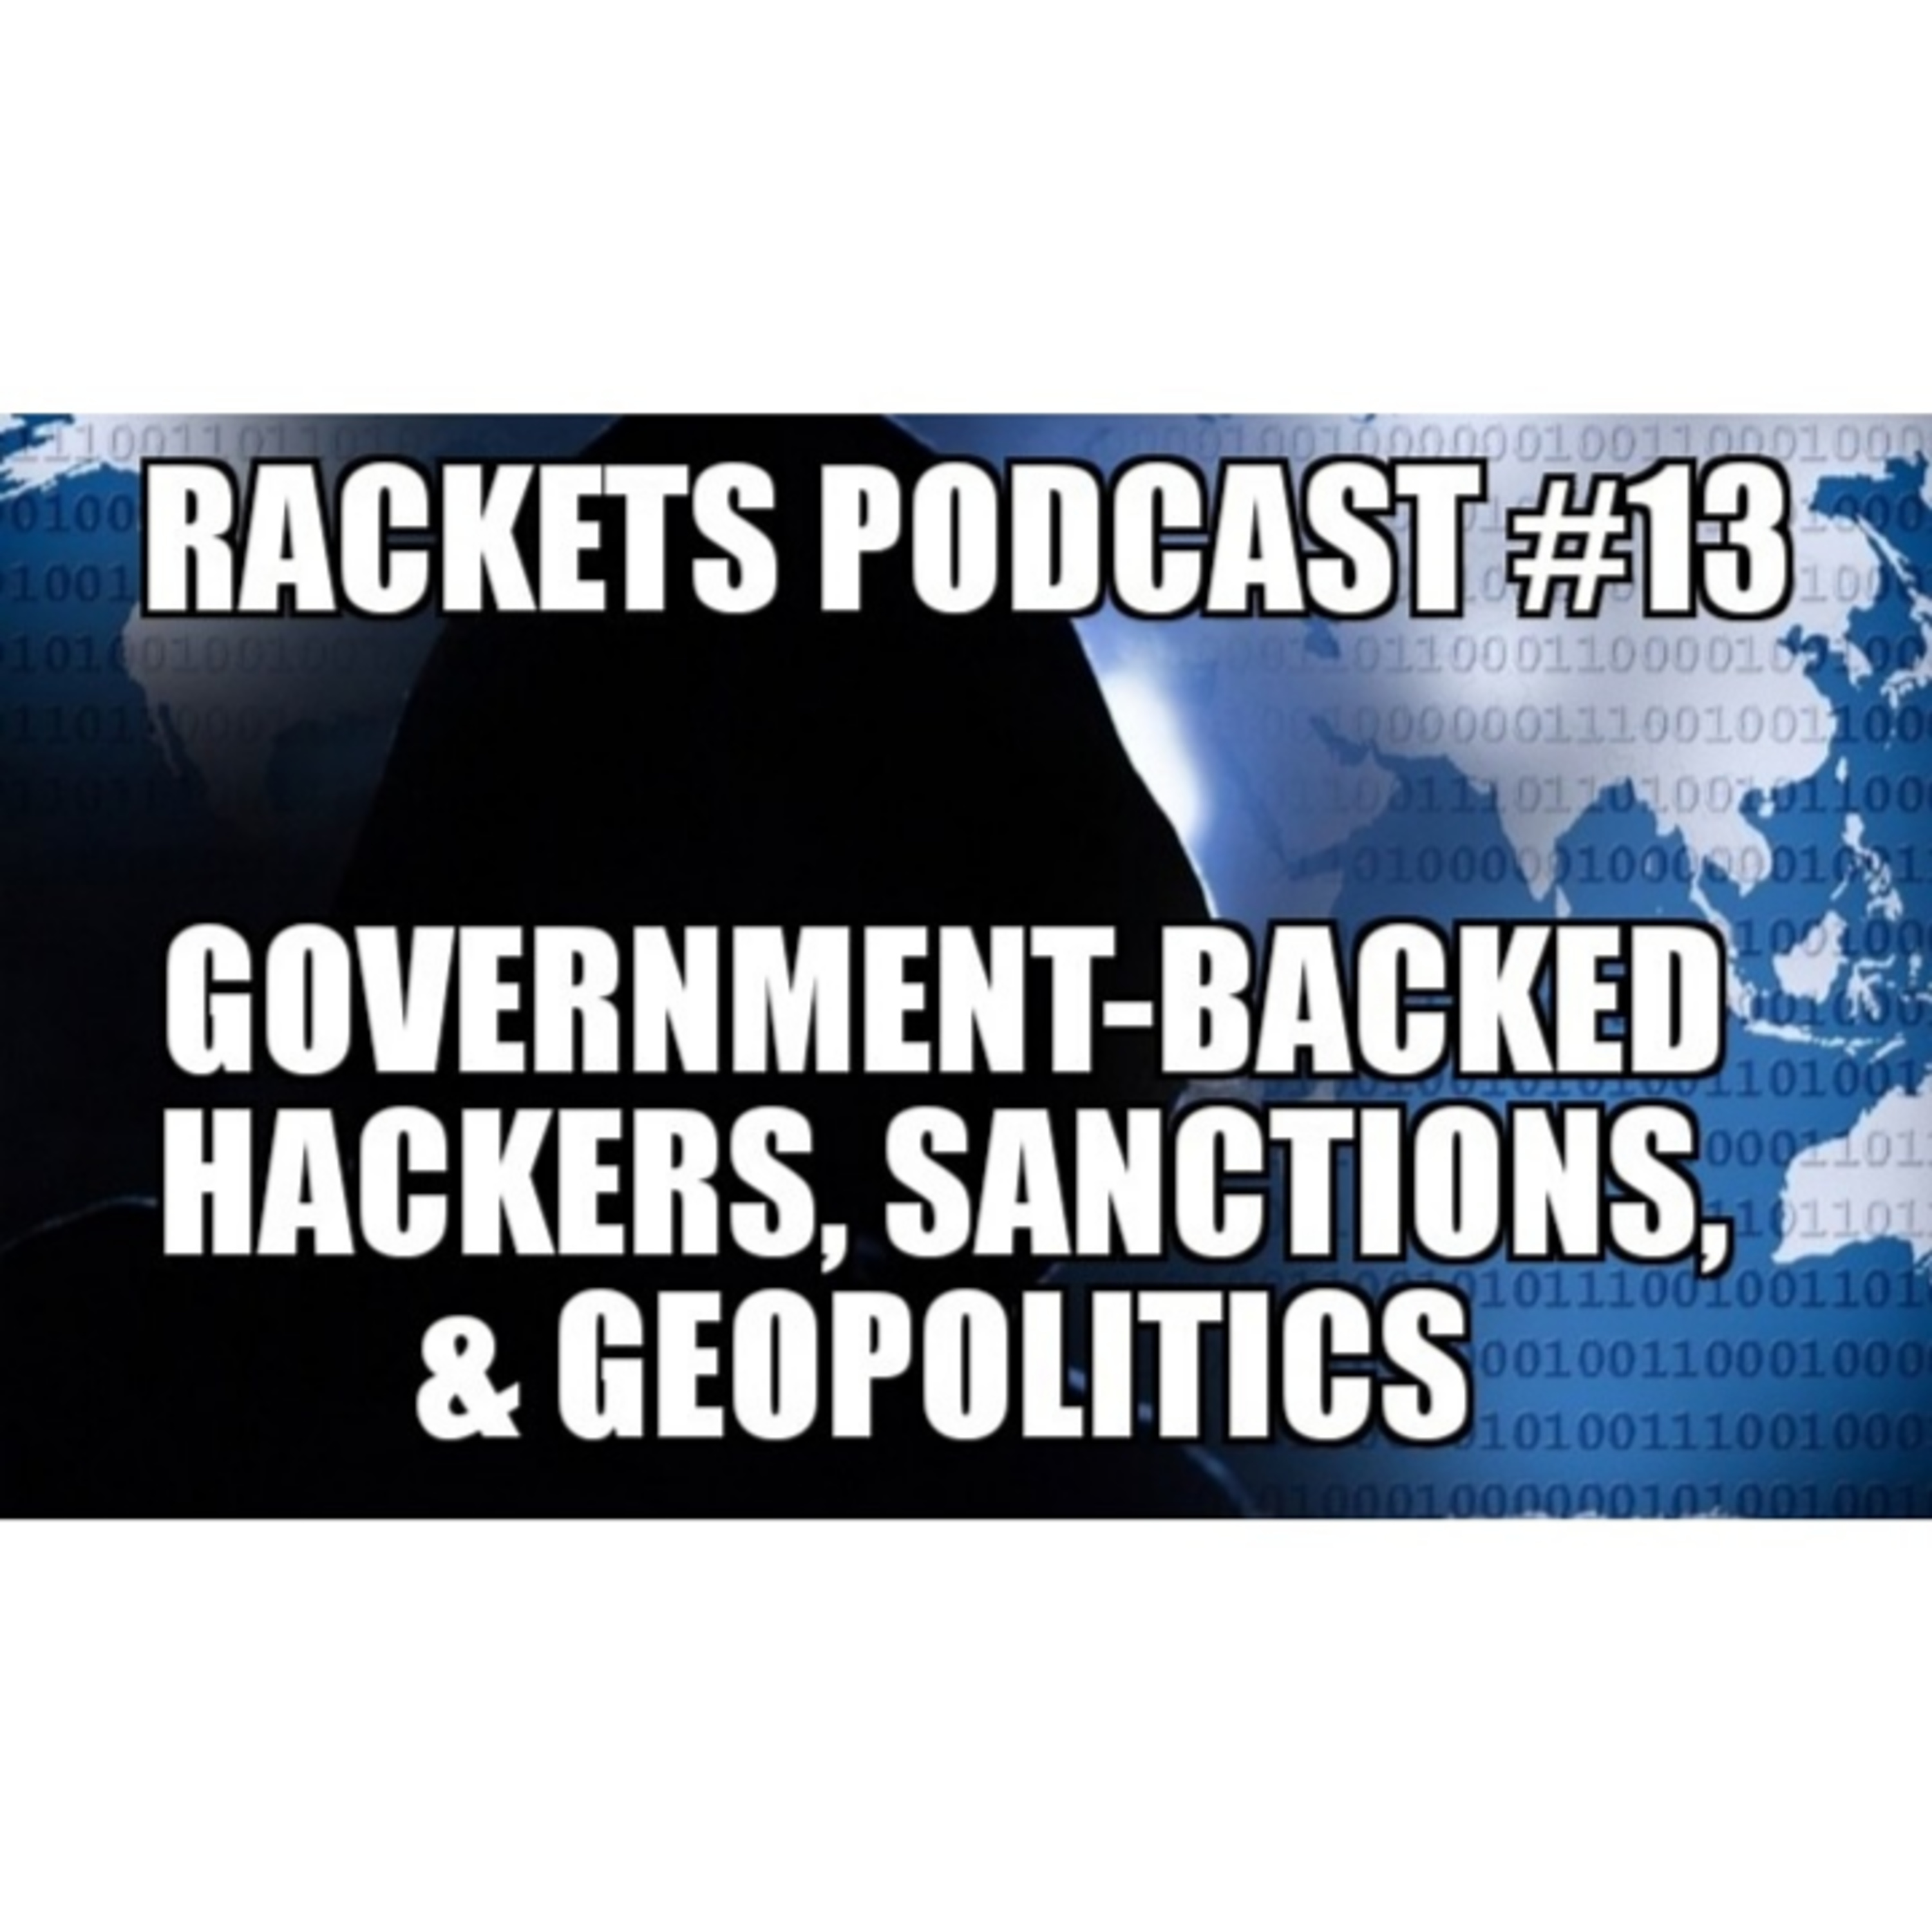 Government-Backed Hackers, Sanctions, & Geopolitics